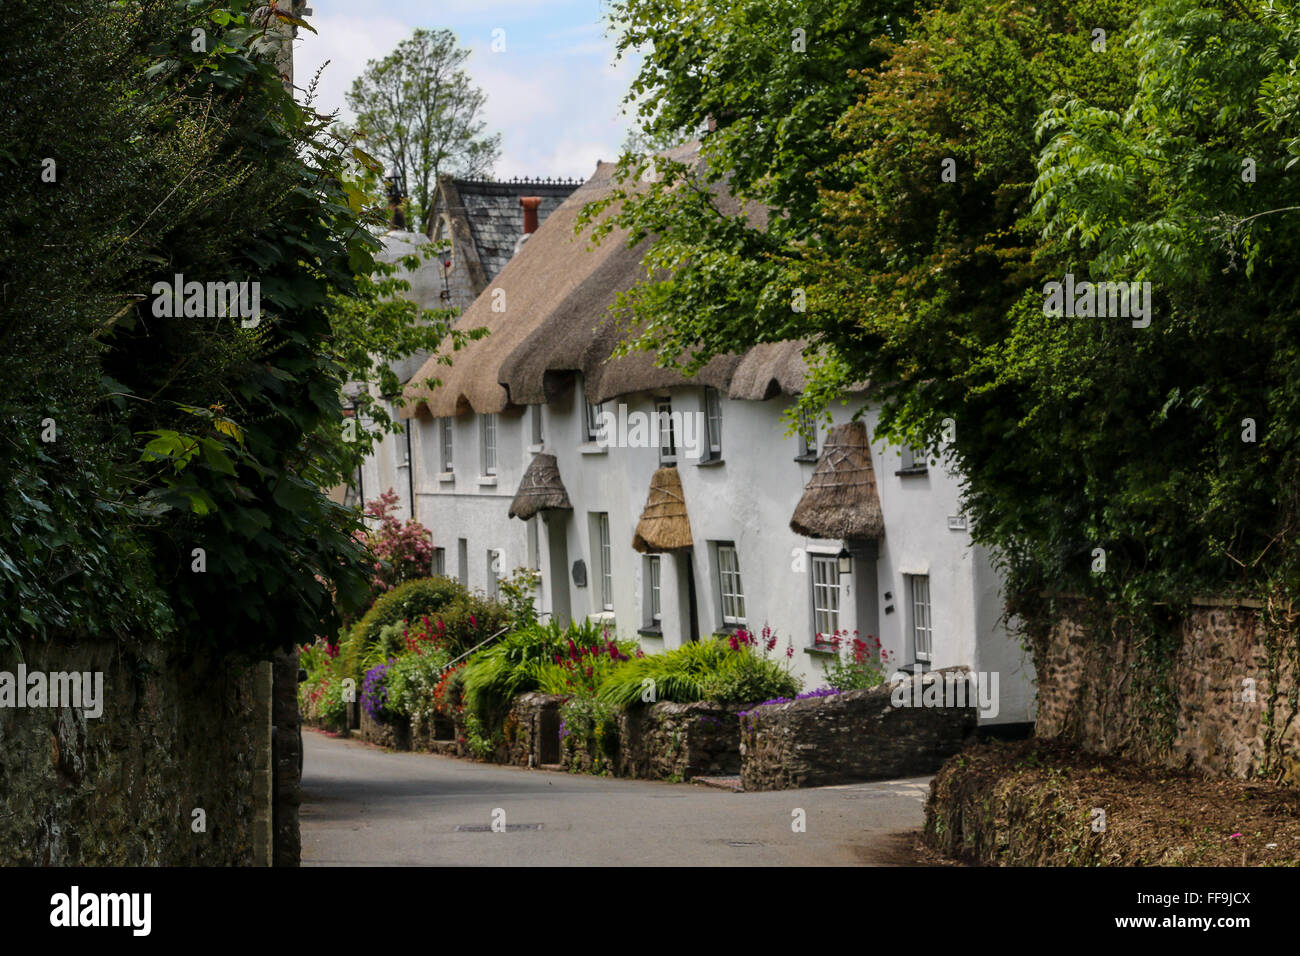 Row of thatch cottages, Kingston, Devon, England, UK - Stock Image